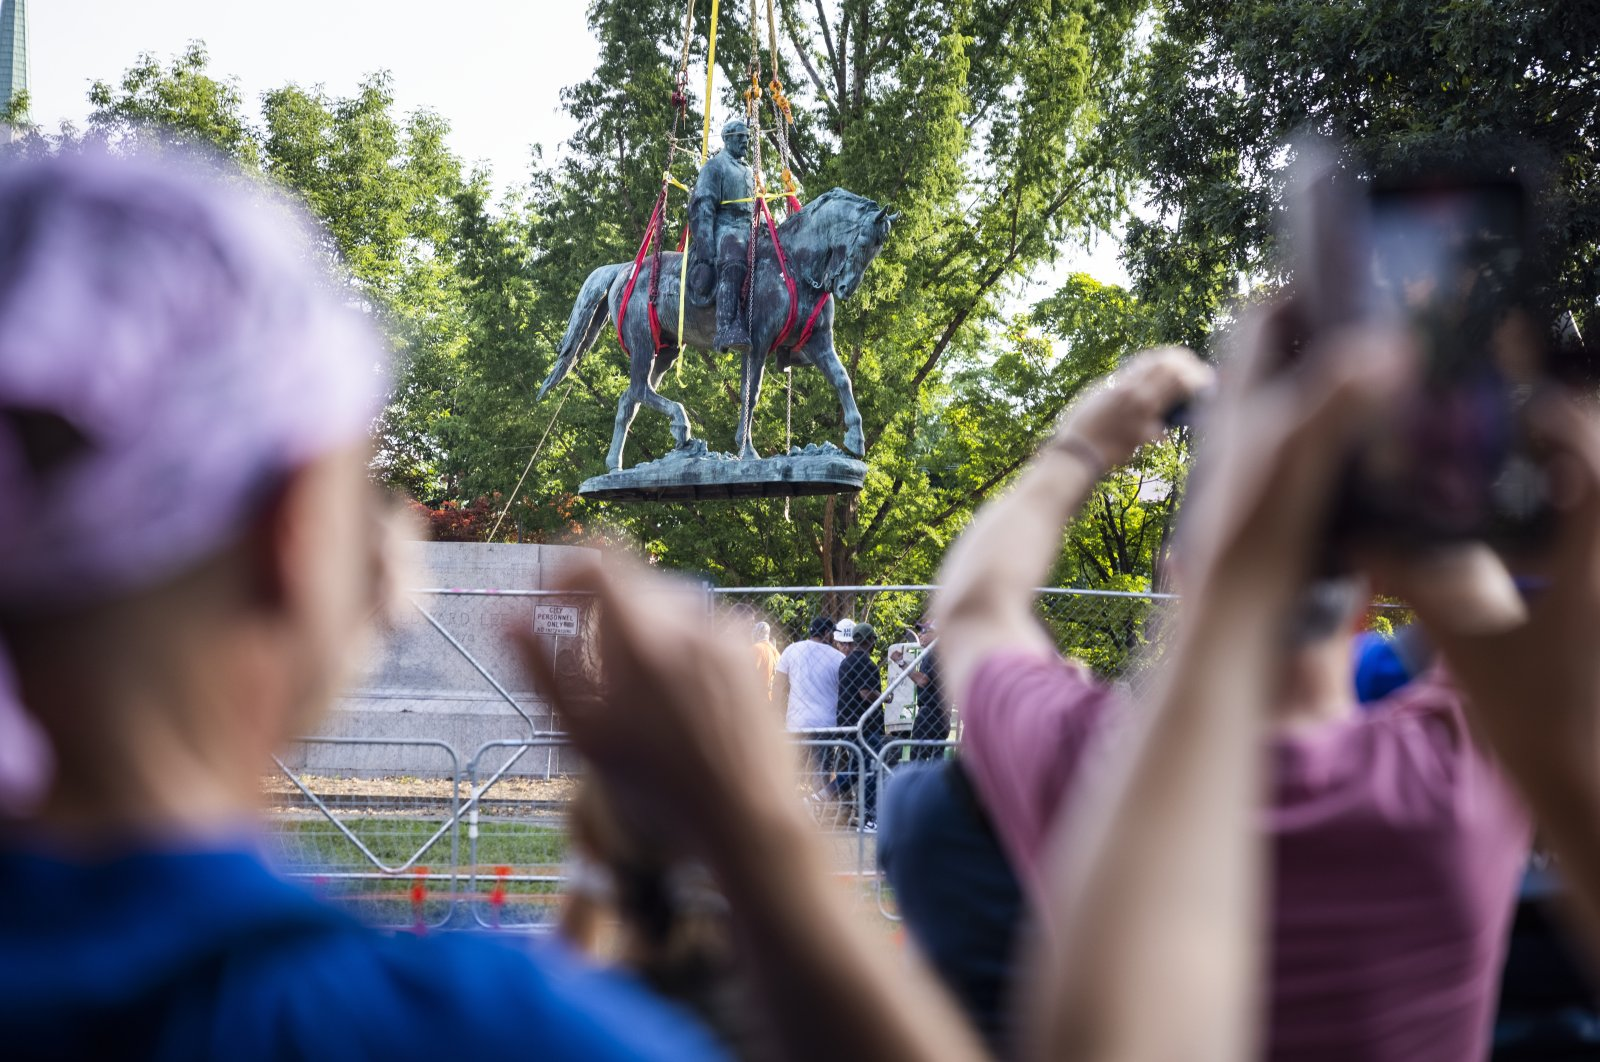 Workers remove the statue of Confederate General Robert E. Lee in Market Street Park in Charlottesville, Virginia, USA, July 10, 2021. (EPA Photo)